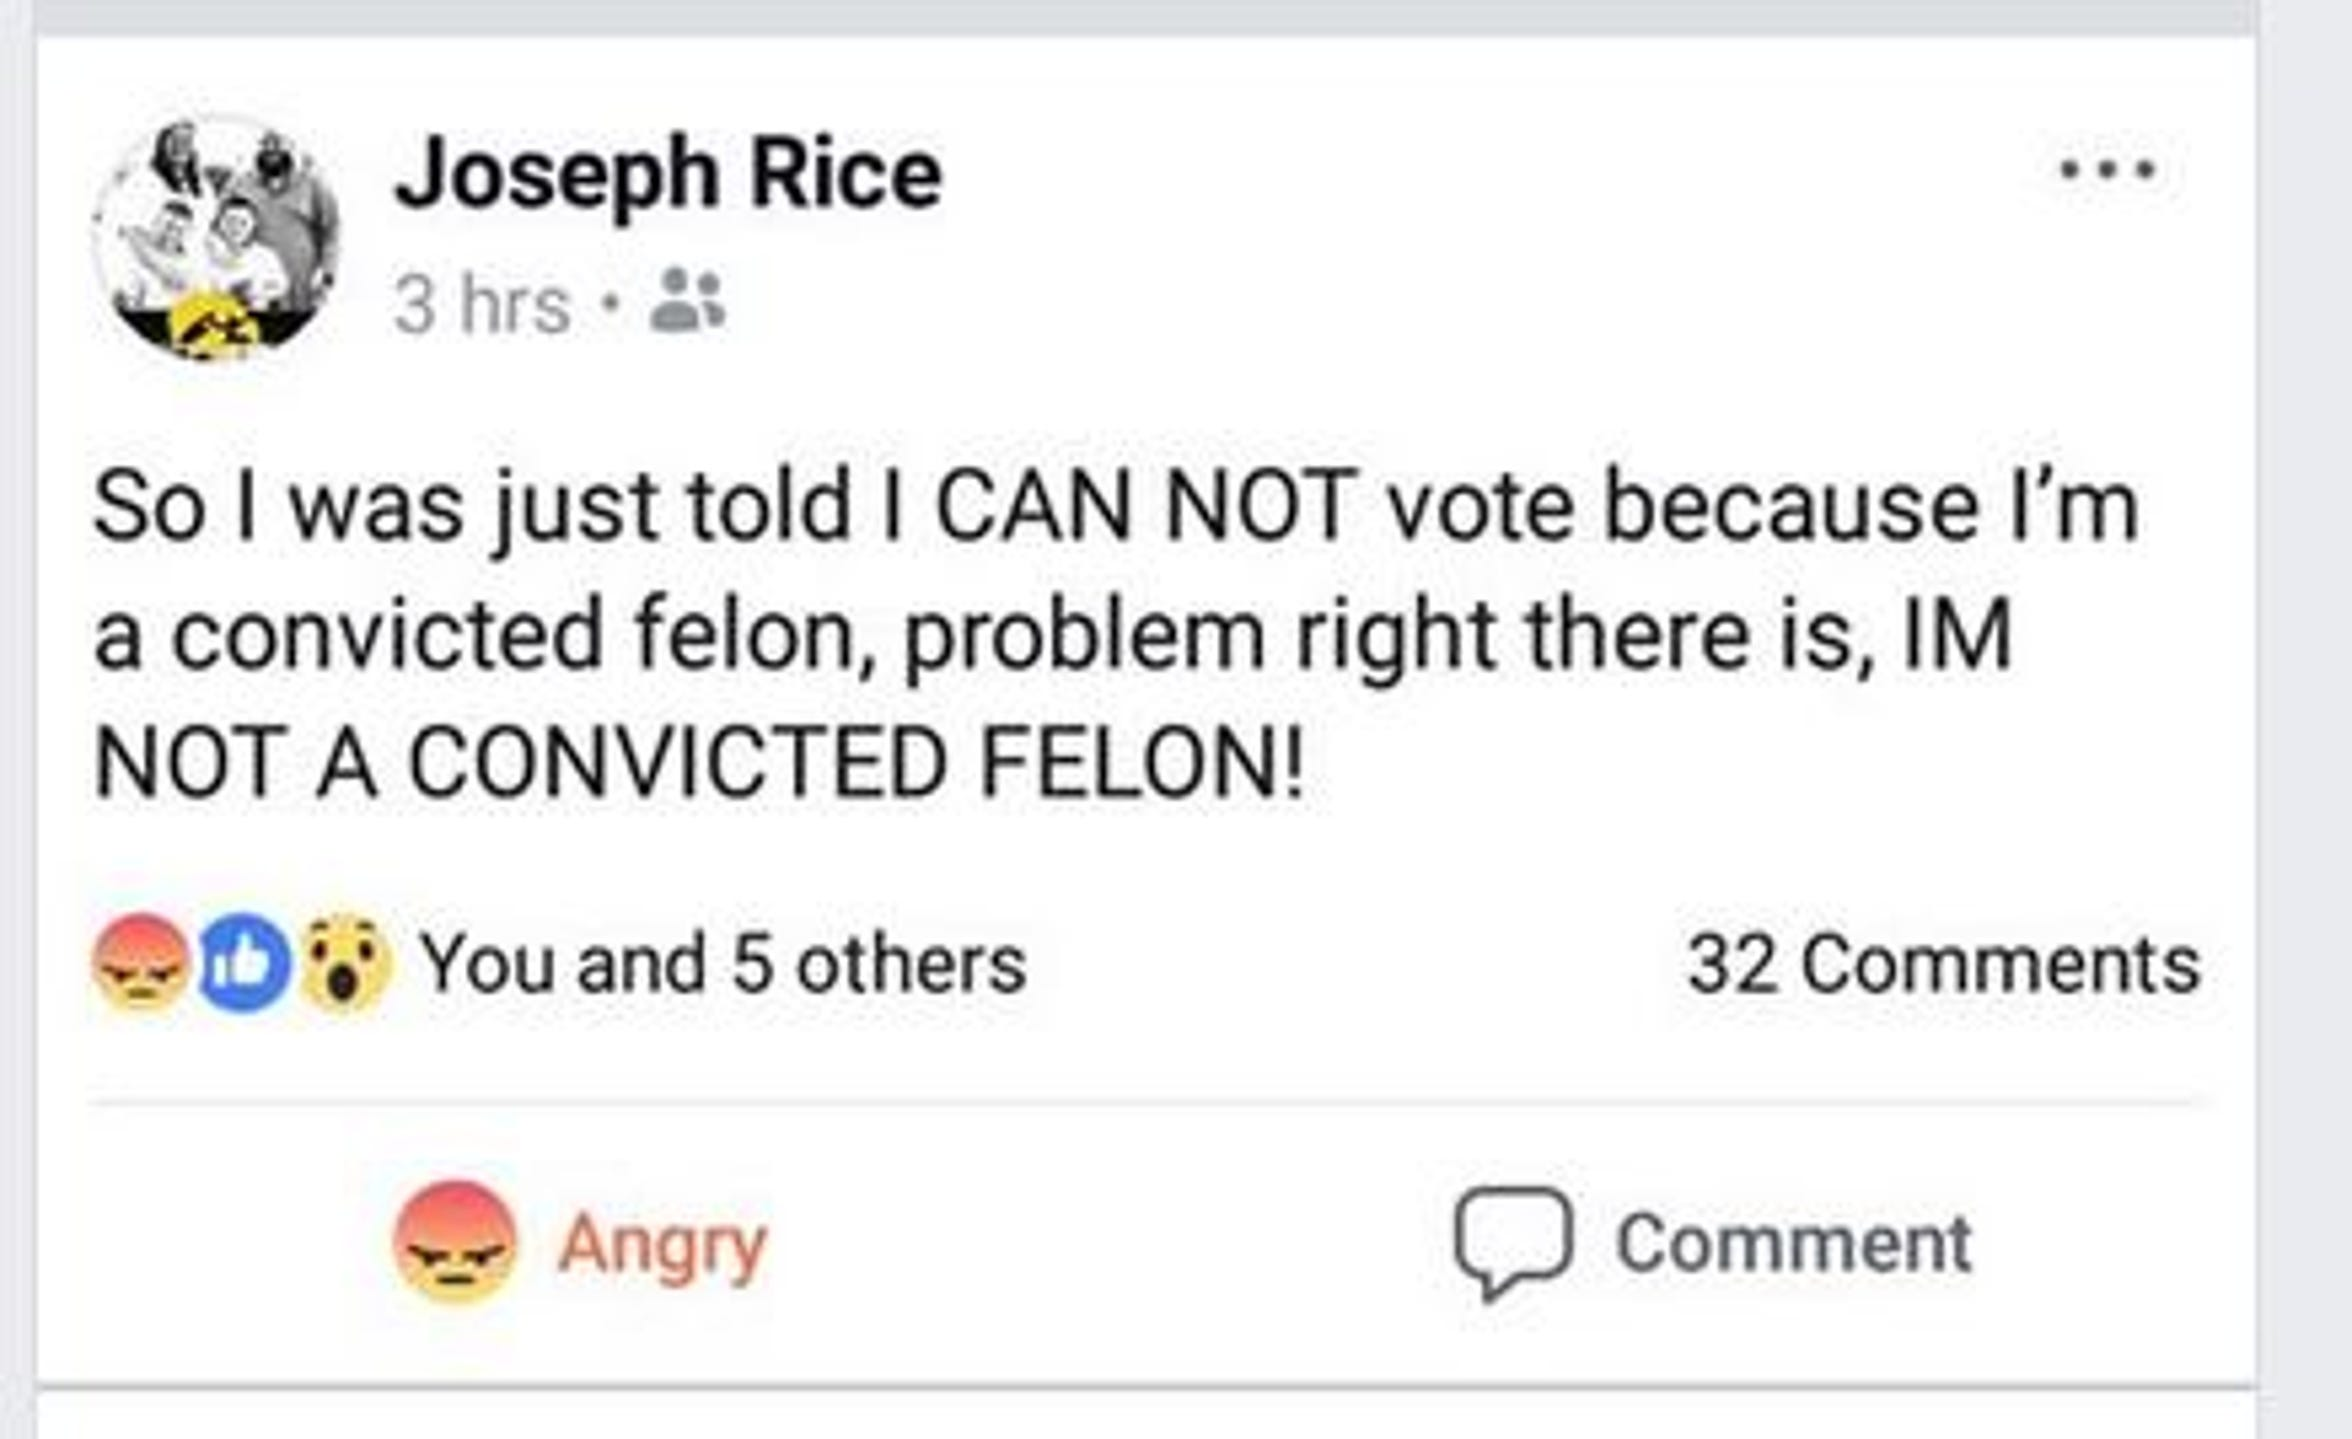 Joe Rice of Des Moines posted about his experience voting Tuesday, Nov. 6, 2018